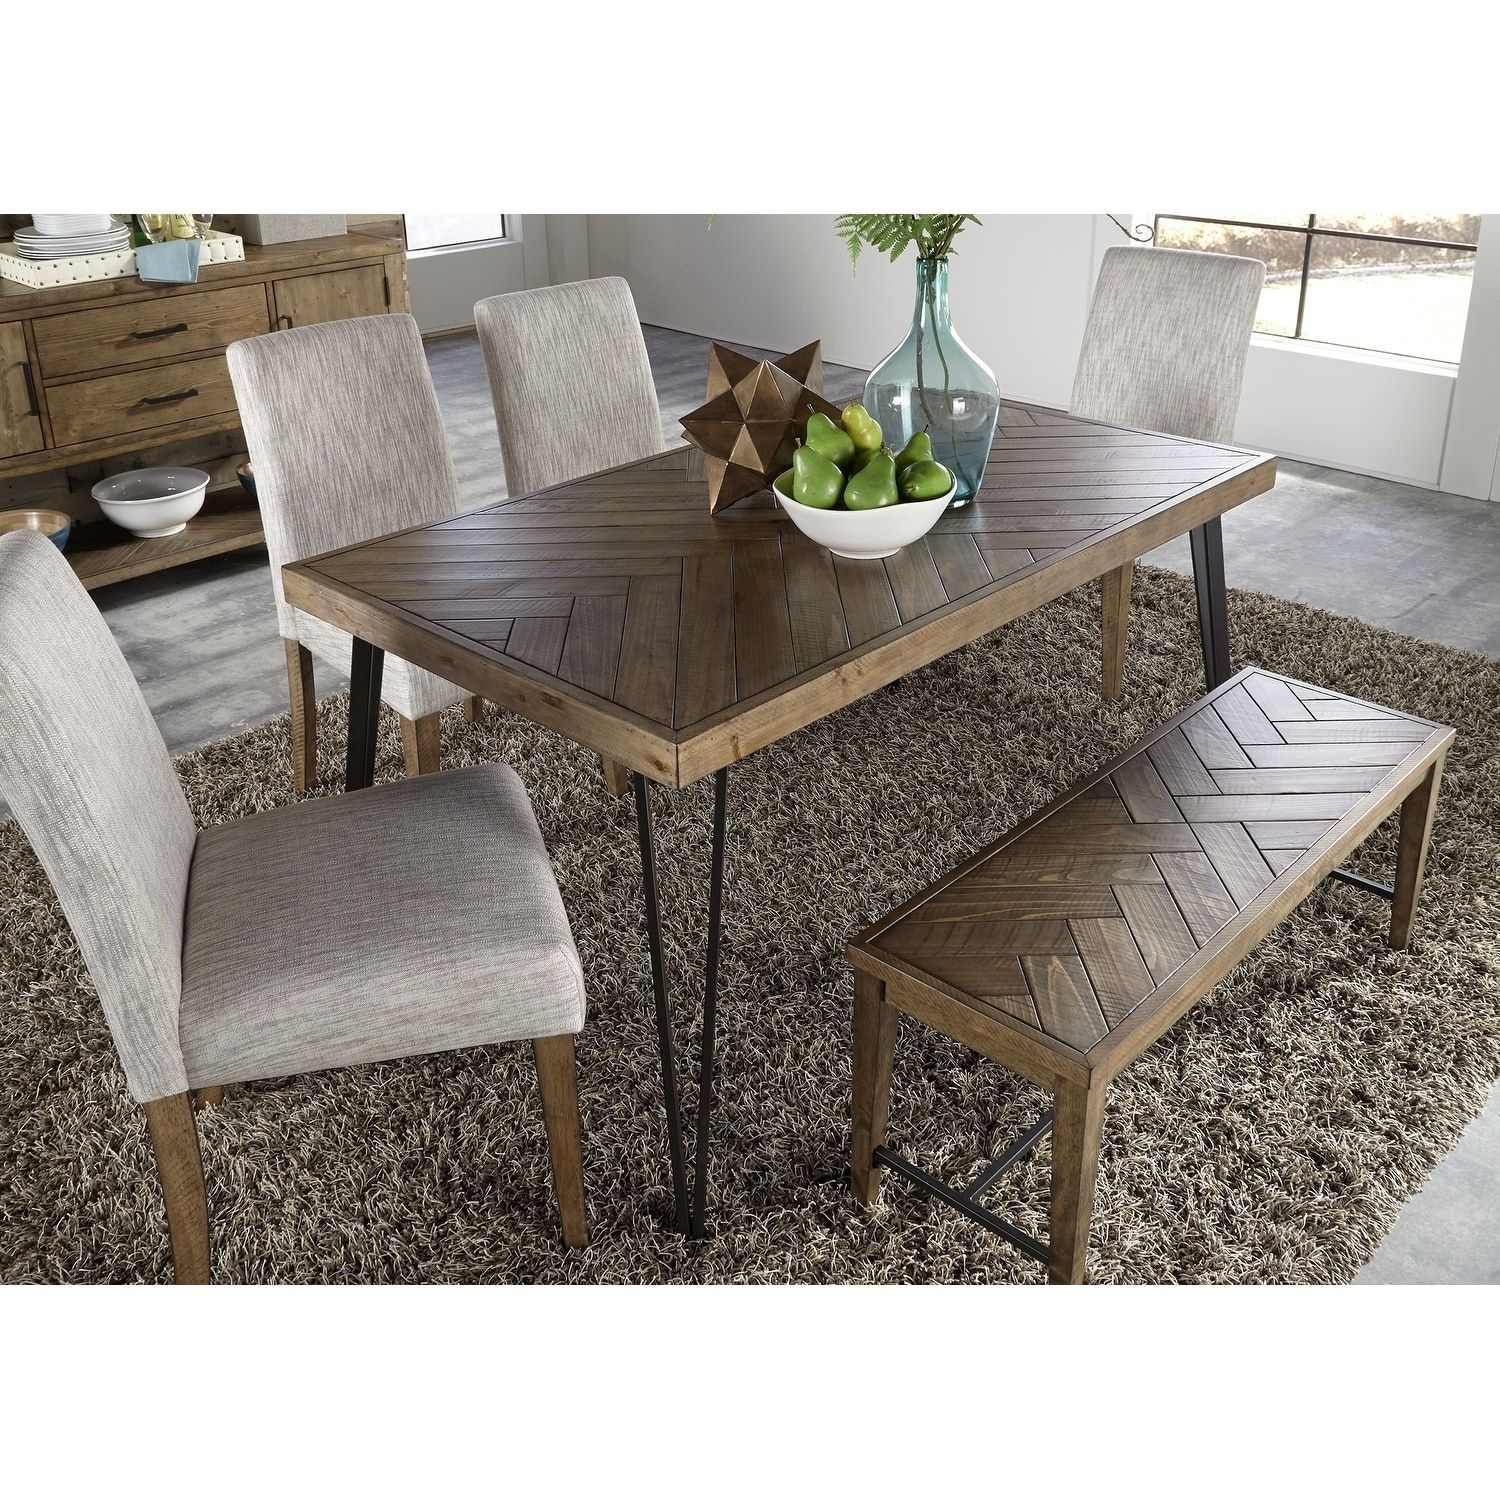 Marvelous Horizons Rustic Caramel With Sawmark Distressing Dinette Gmtry Best Dining Table And Chair Ideas Images Gmtryco